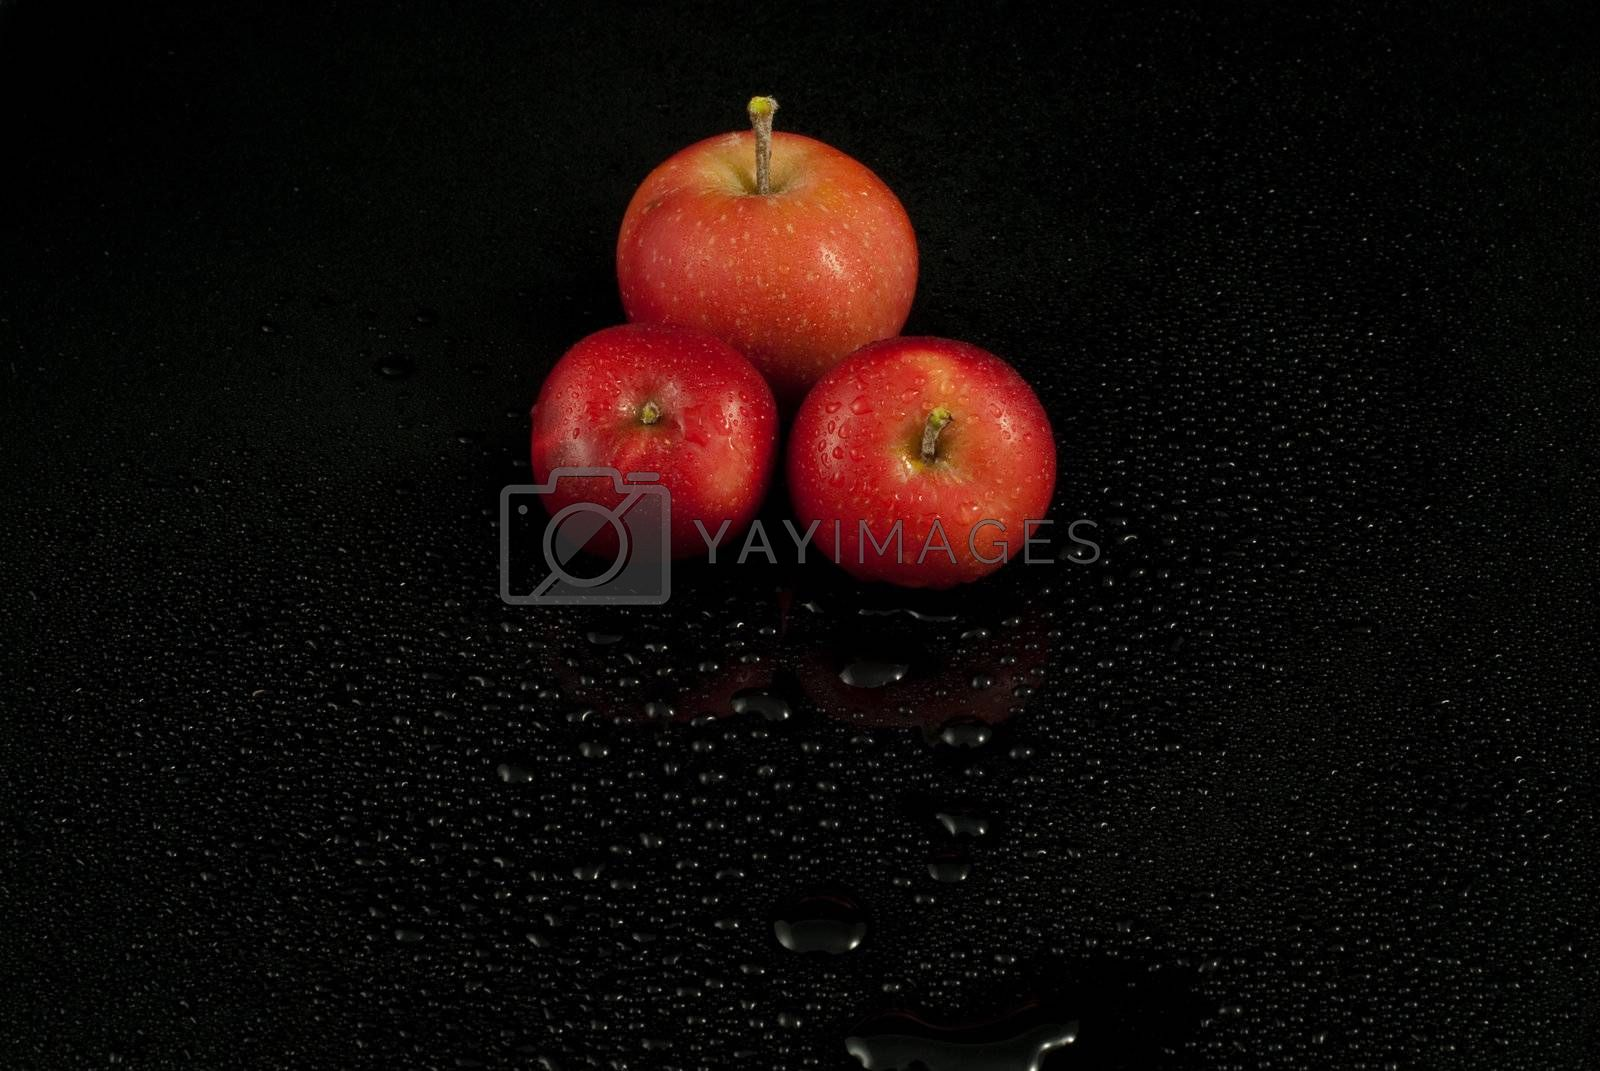 Royalty free image of Wet wild apples by signumstudio